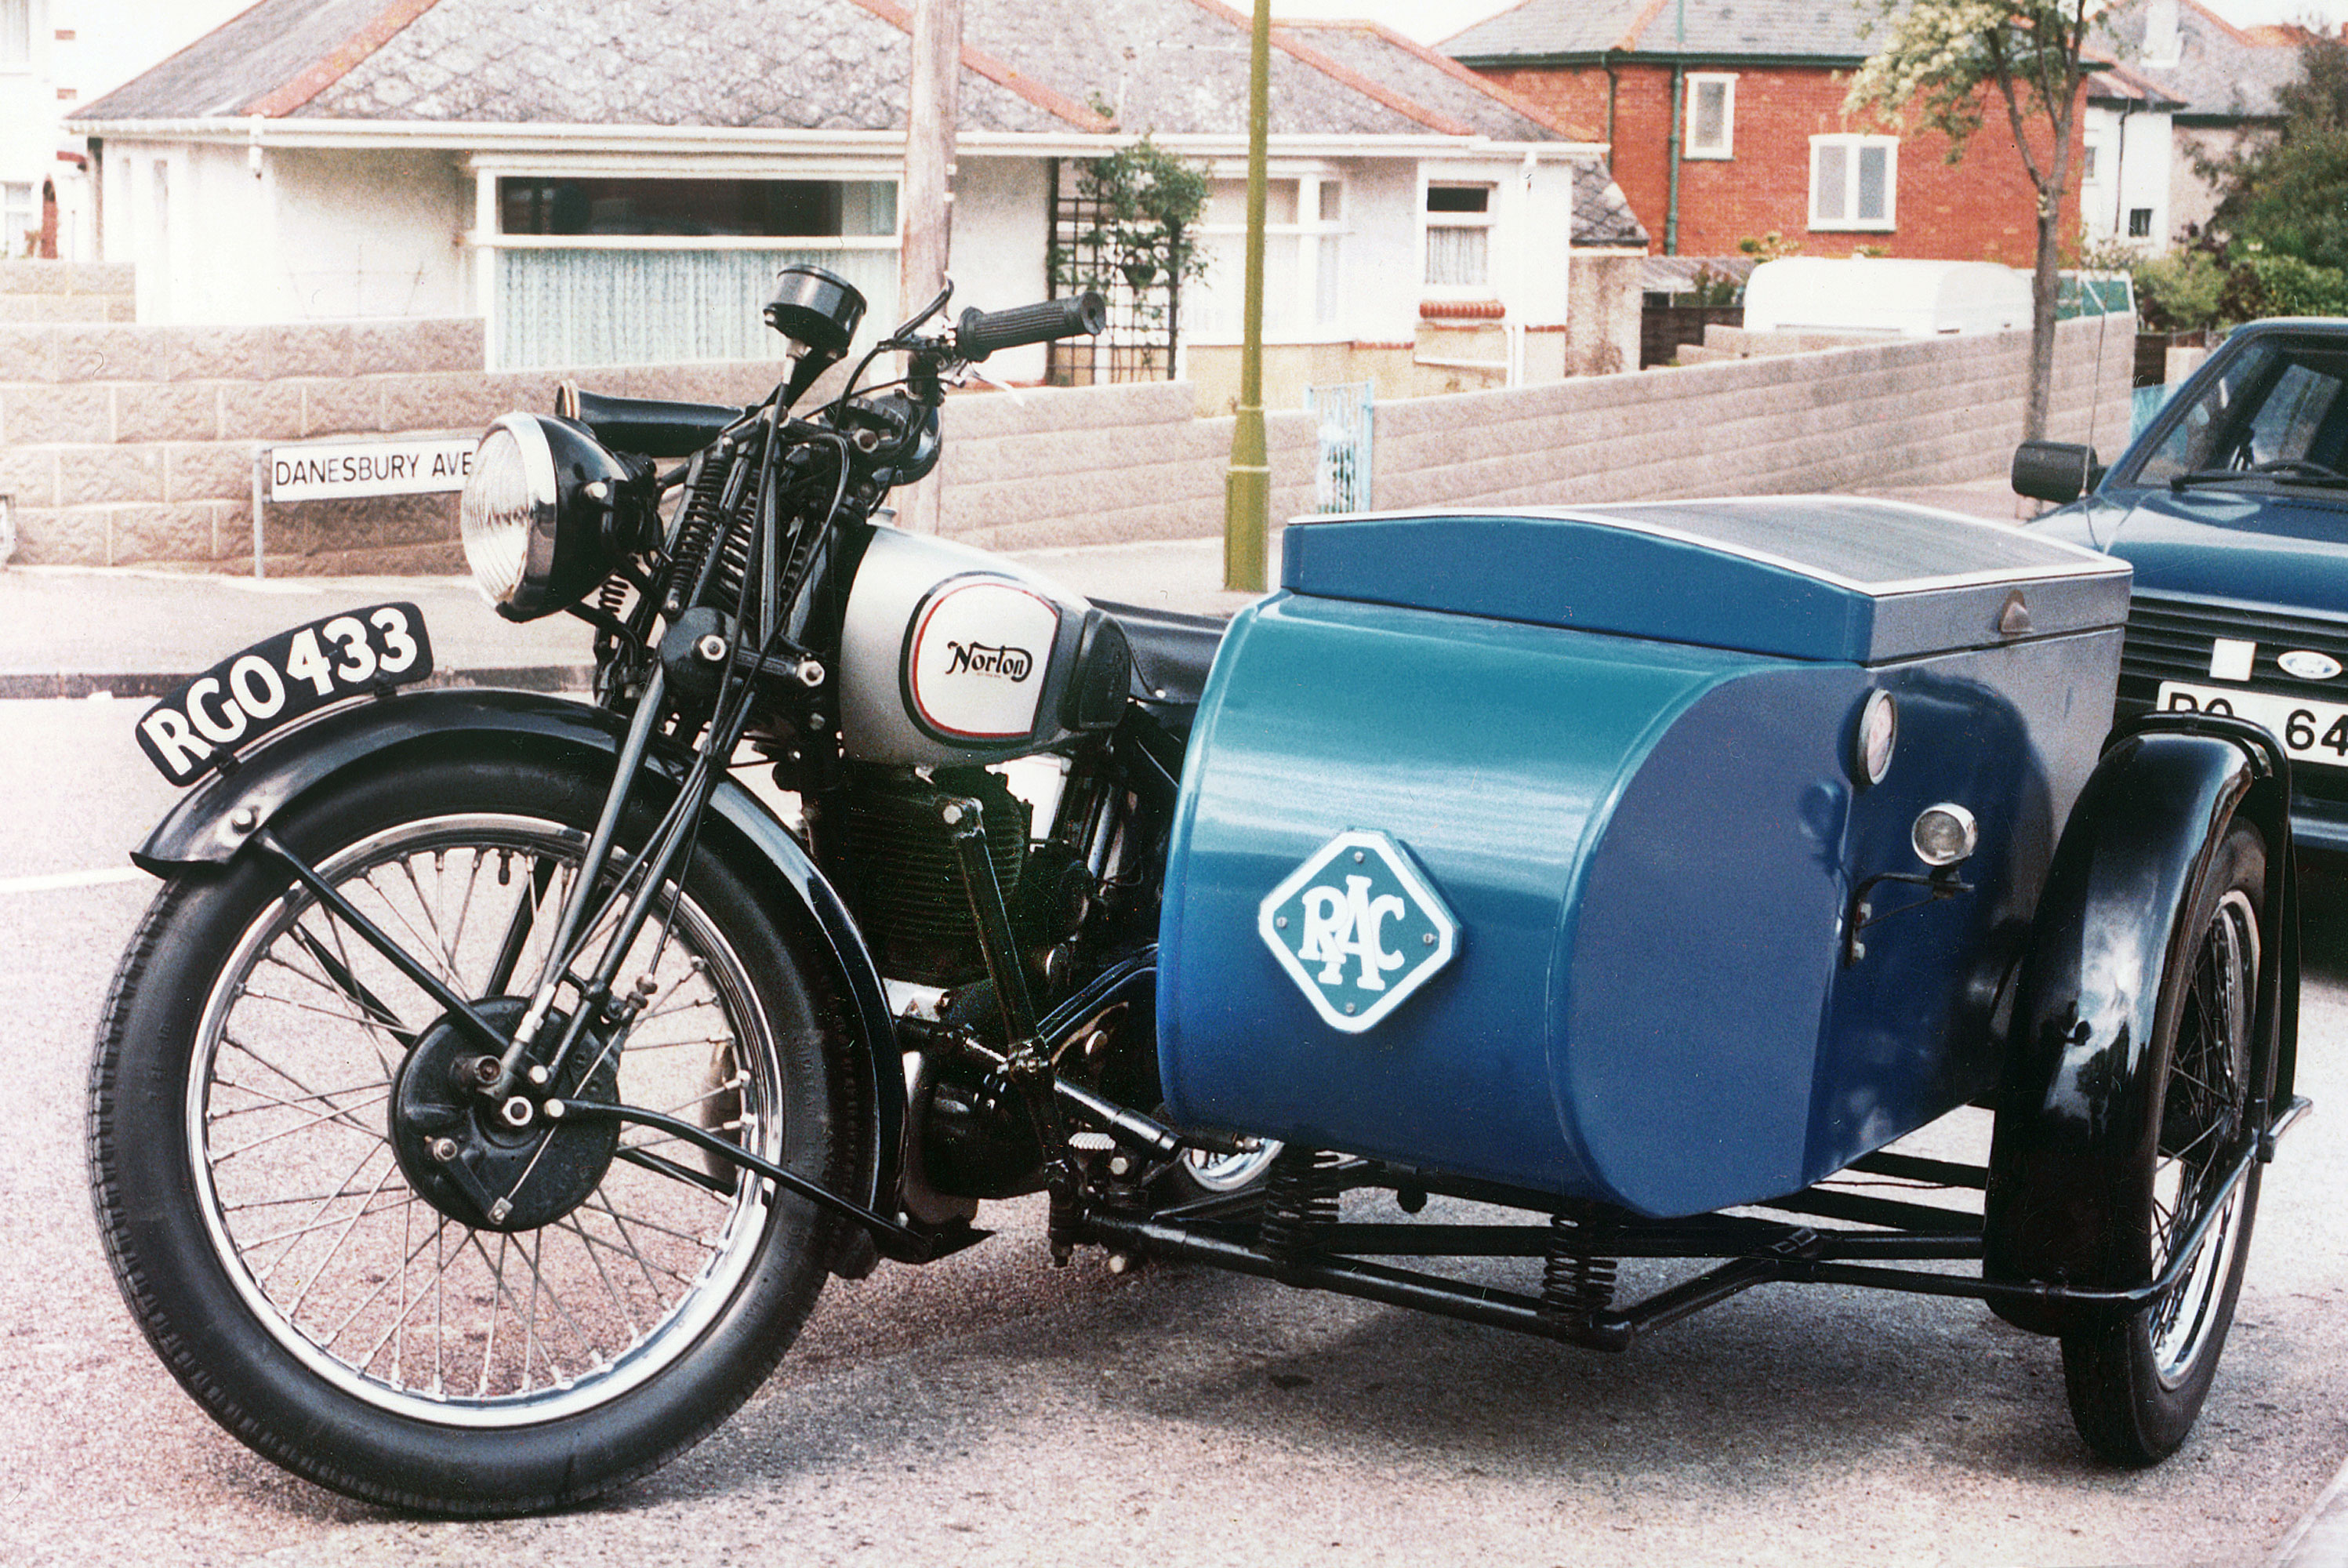 Norton 500cc RAC patrol combination 1936